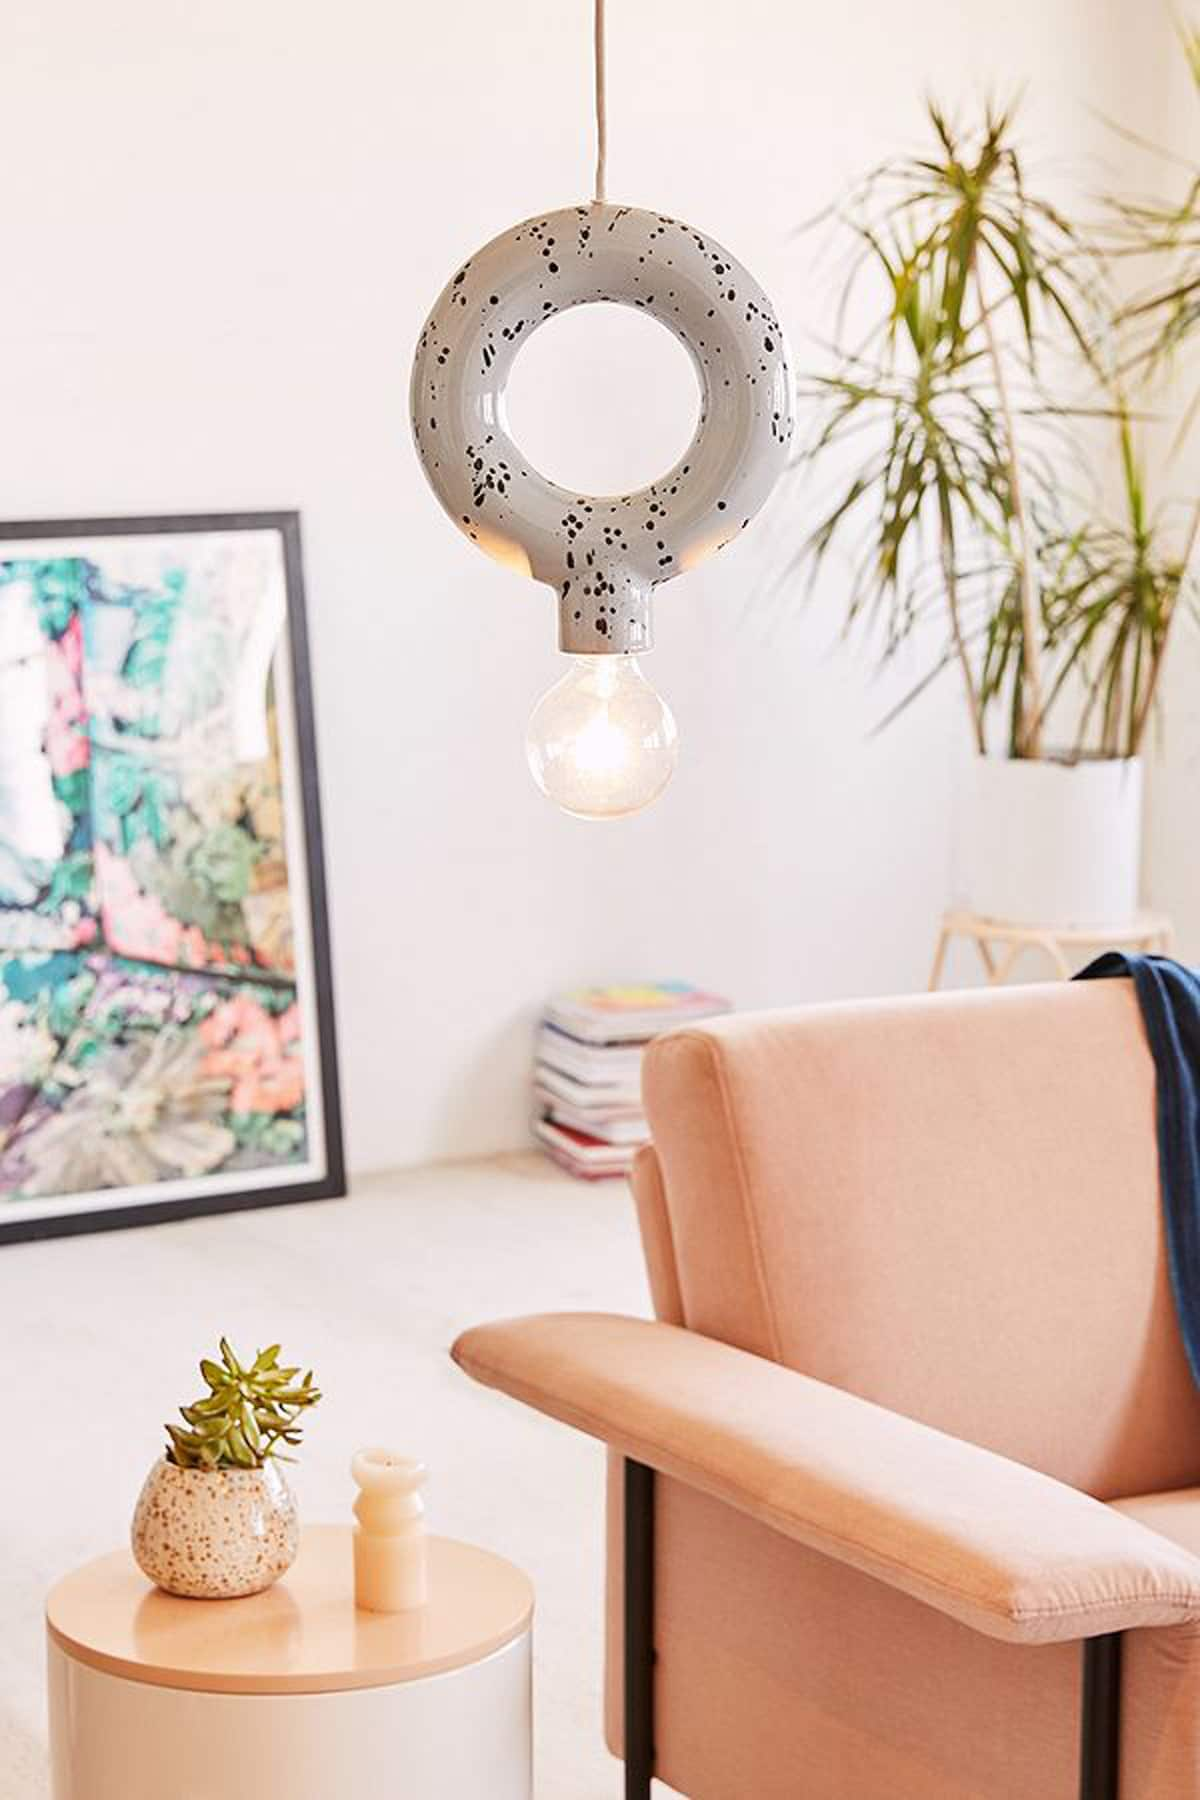 Urban Outfitters Just Launched Its Home Line for Spring Line — And It's Incredible: gallery image 2